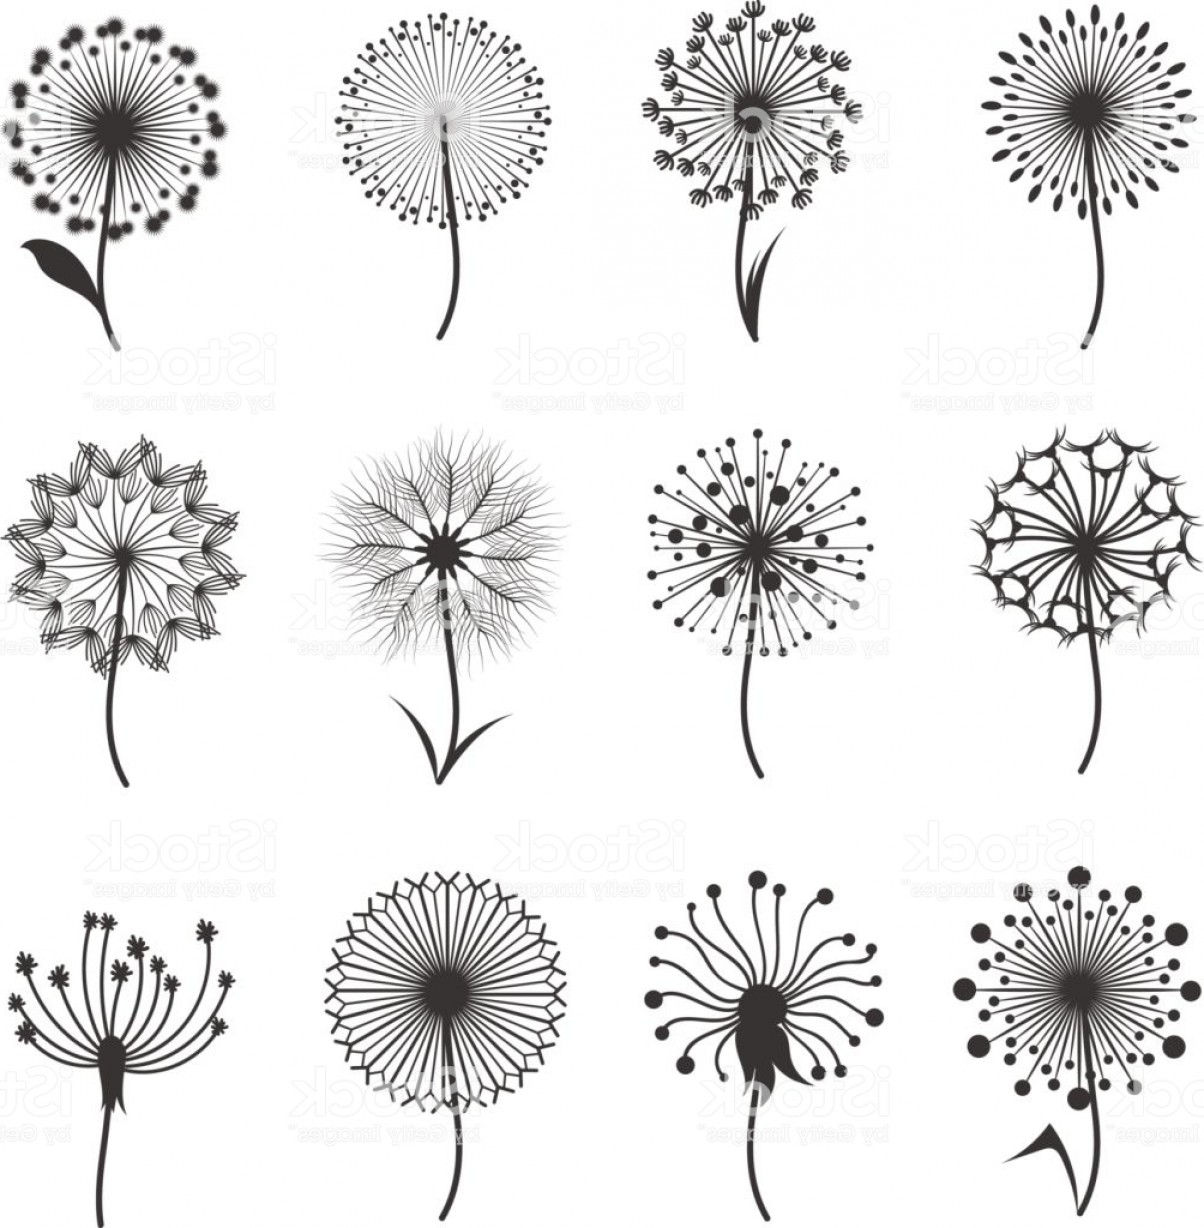 Seed Flower Vectors: Dandelion Flowers With Fluffy Seeds Black Floral Vector Silhouettes Isolated On White Gm